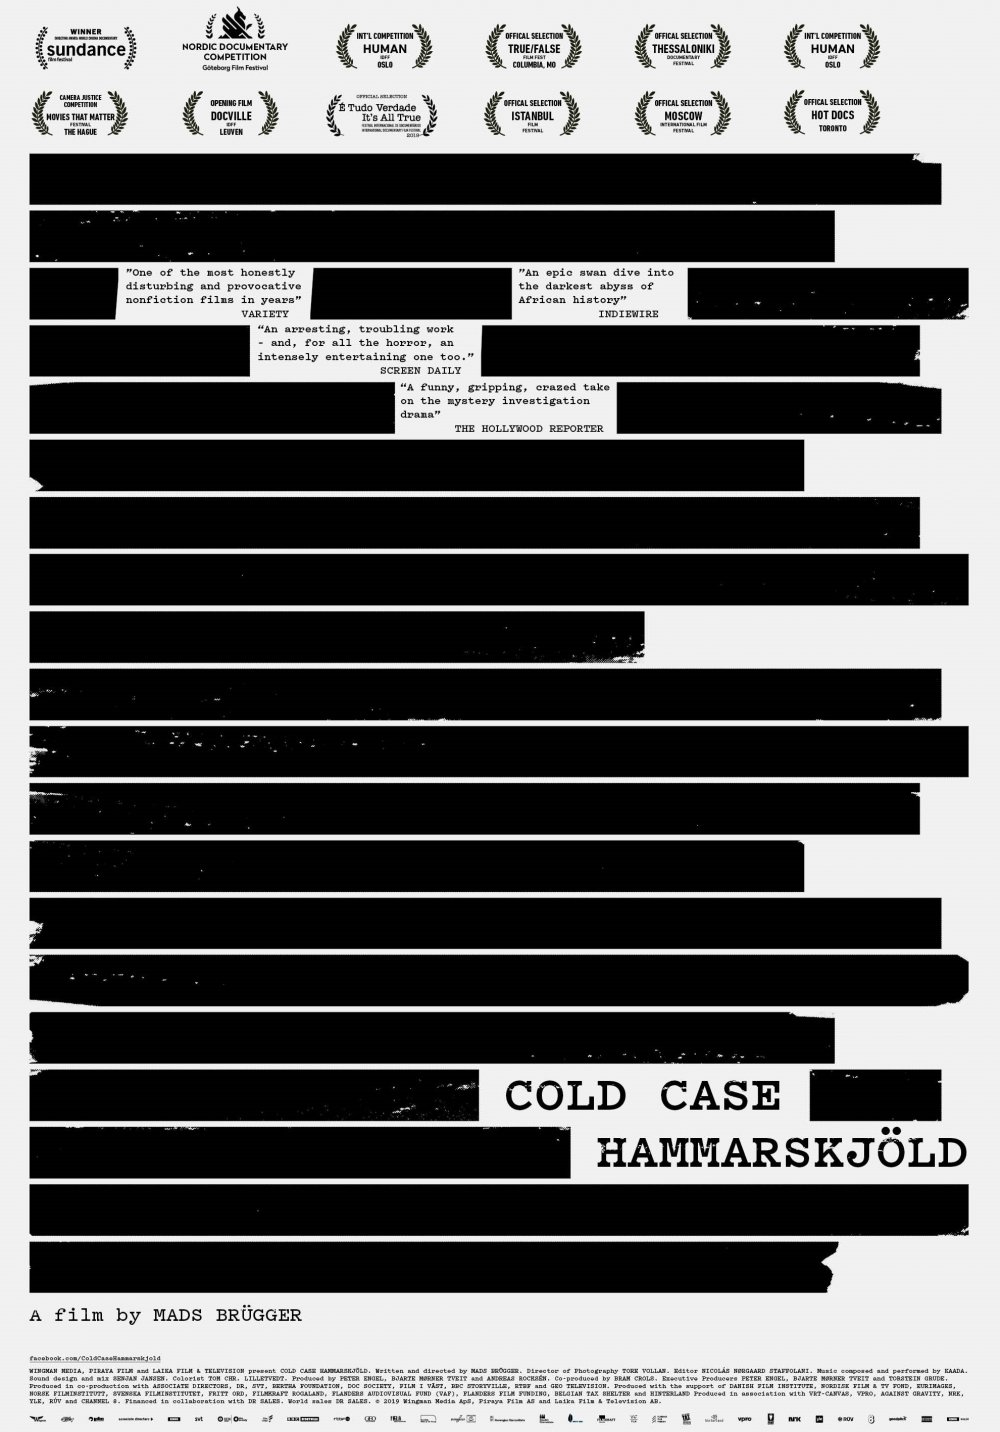 <strong>Cold Case Hammarskjöld</strong>  This wild, stranger-than-fiction documentary depicts the most disturbing true-crime investigation you're likely to have seen in recent years